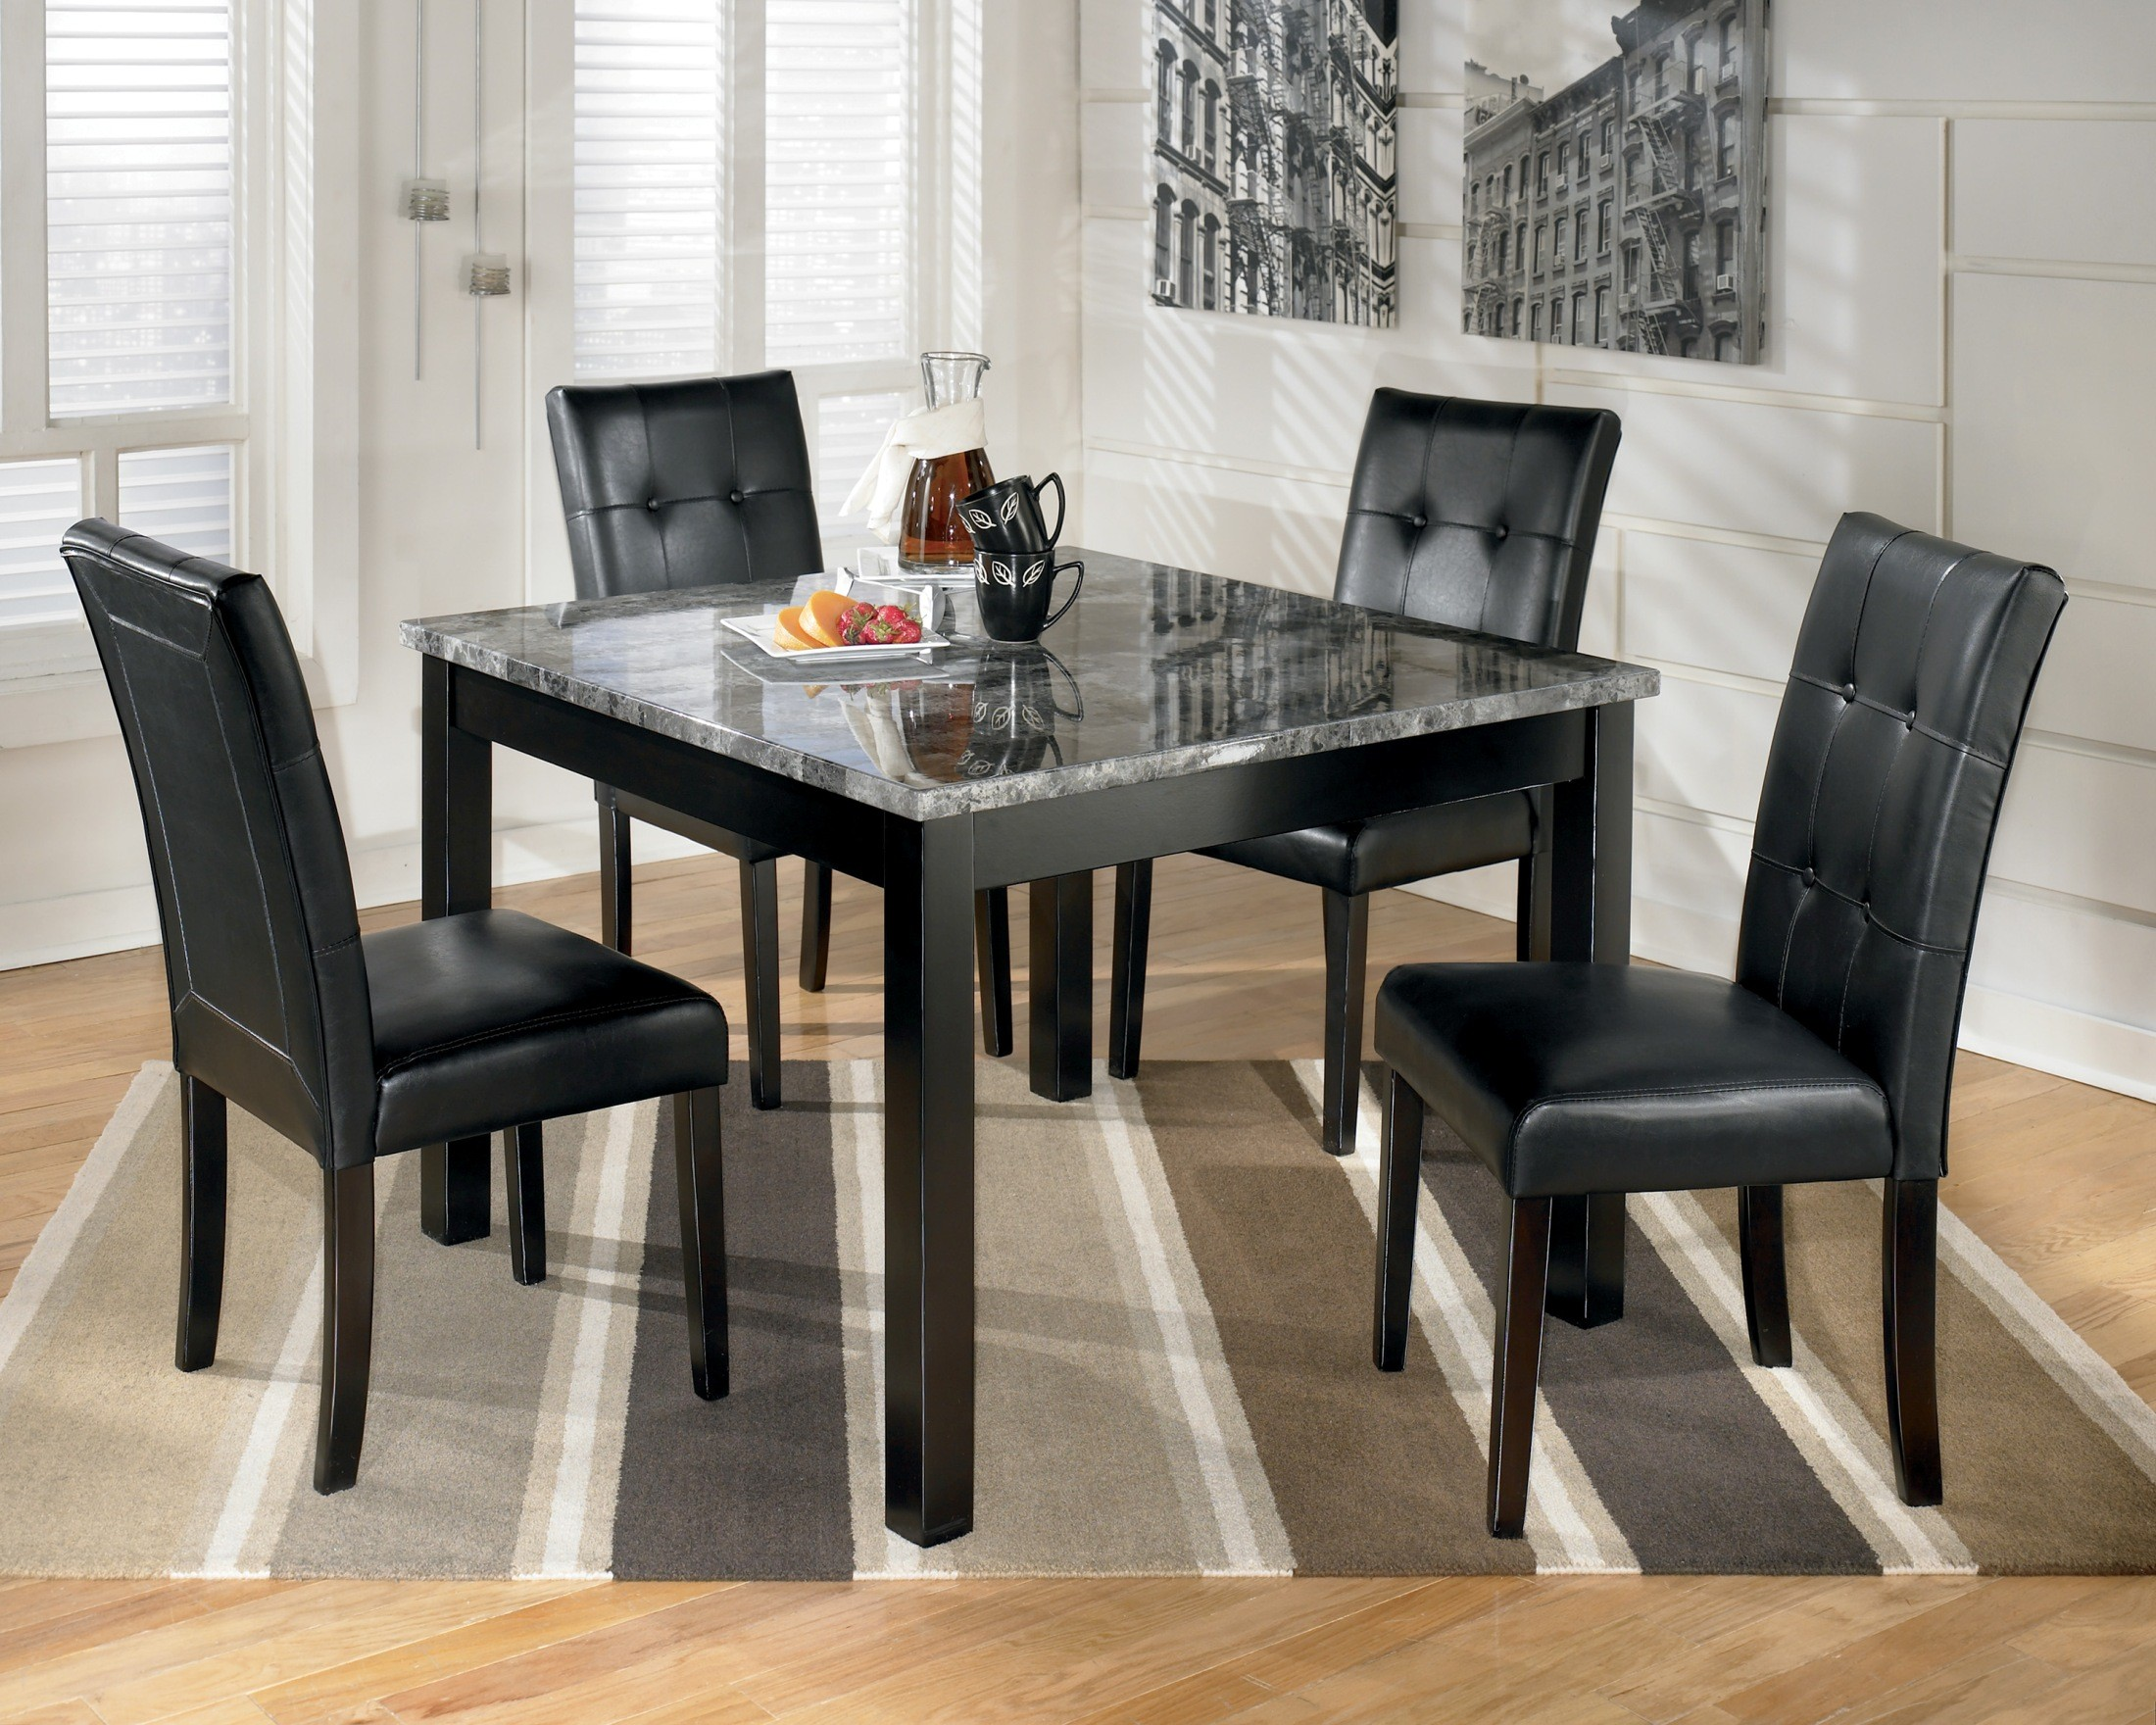 Maysville square dining room table set d154 225 ashley for Square dining room table